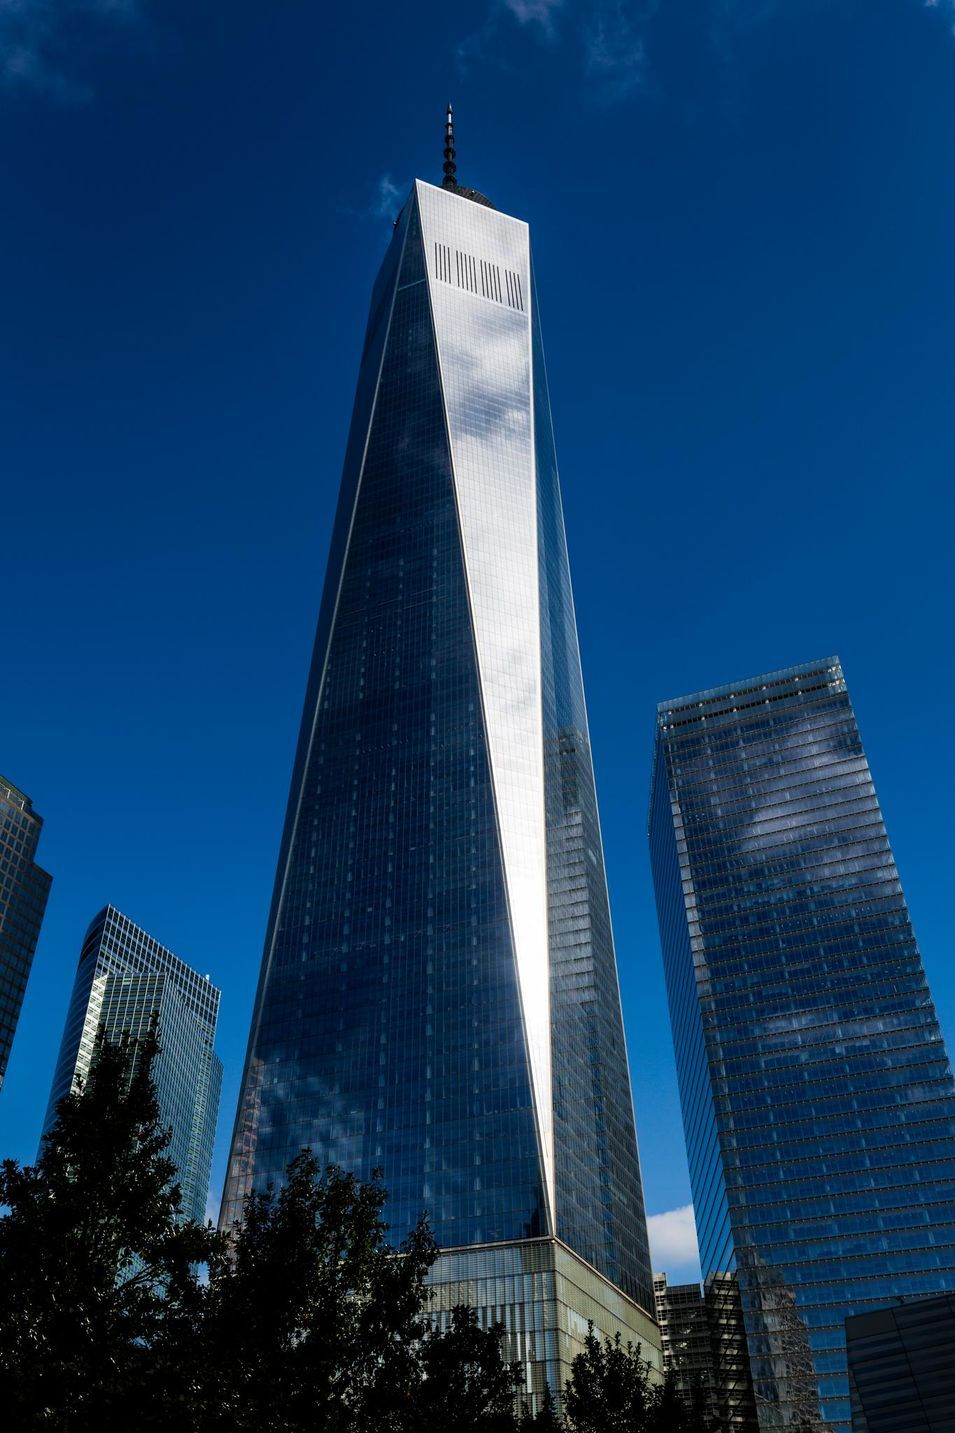 La tour <i>One</i> du World Trade Center